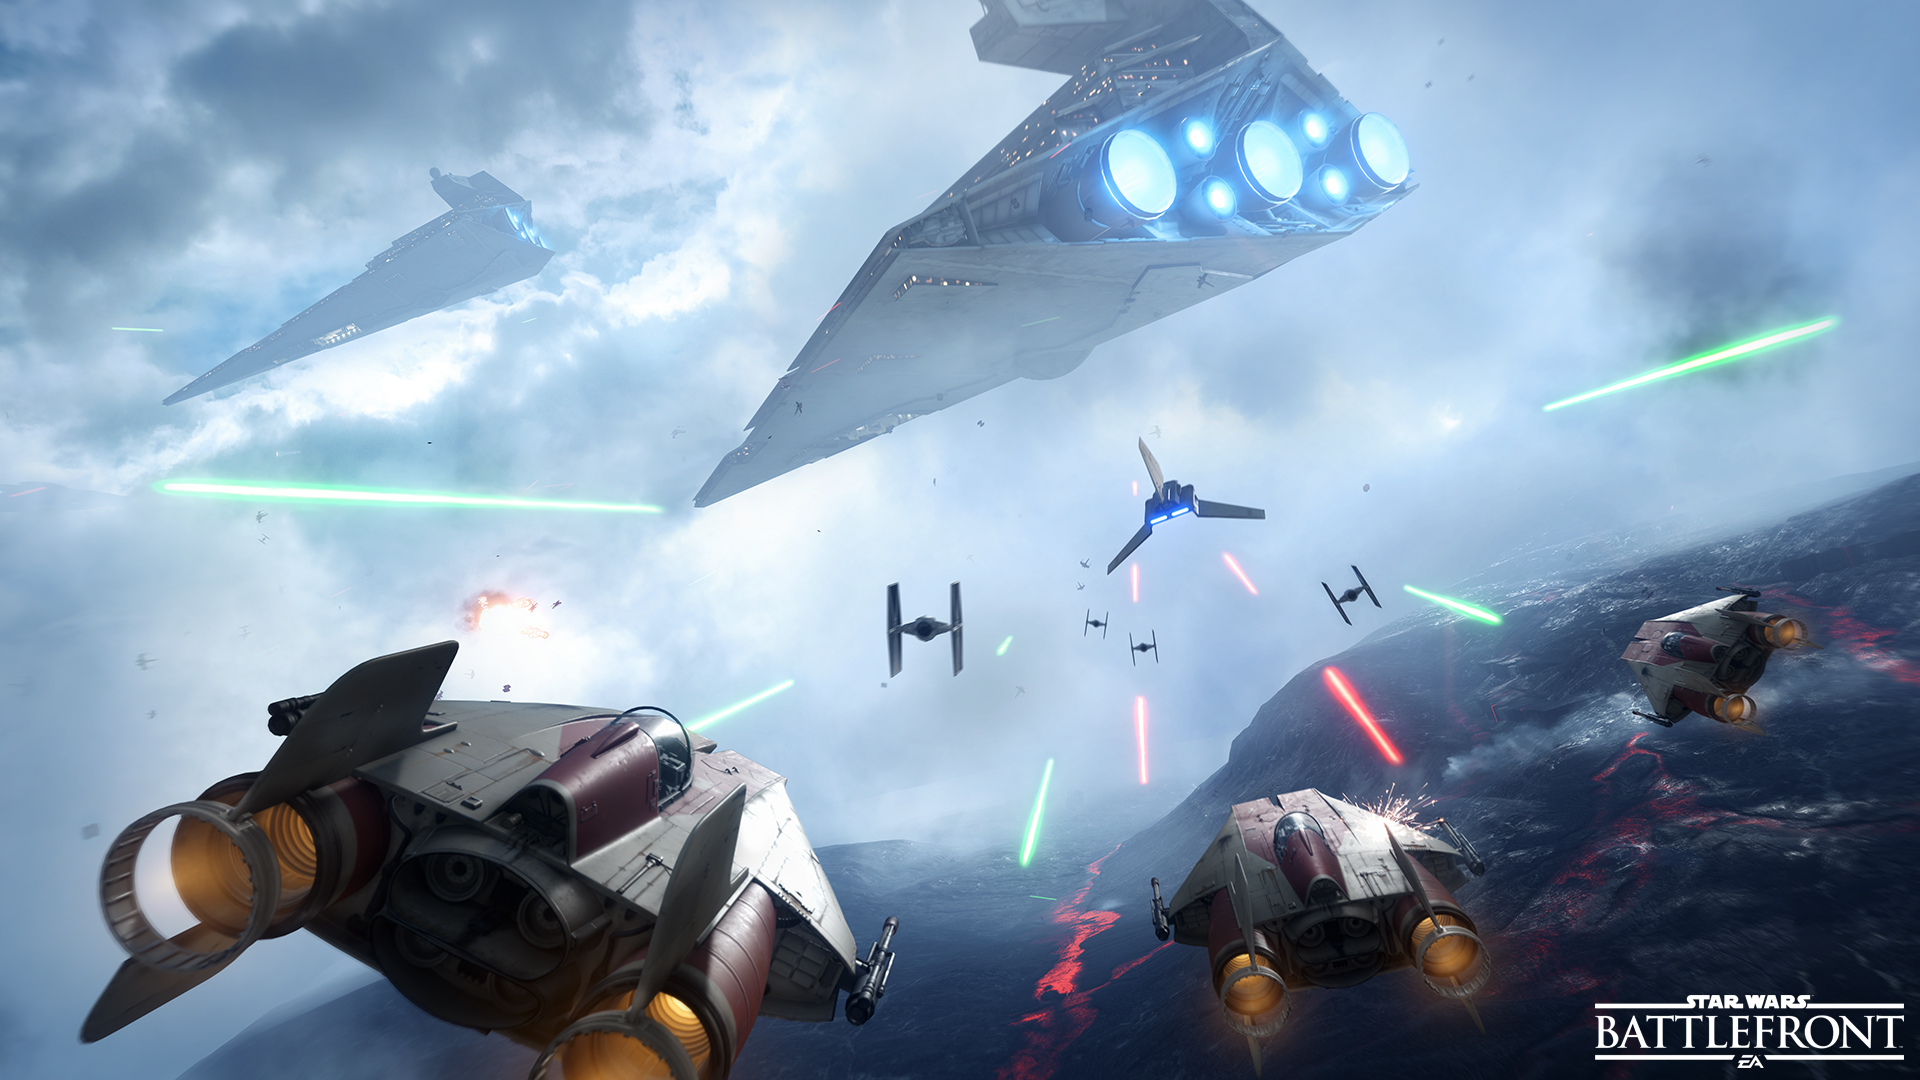 Click to enlarge image Star Wars Battlefront - Fighter Squadron - A Wing vs Imperial Shuttle _ FINAL FOR RELEASE.jpg